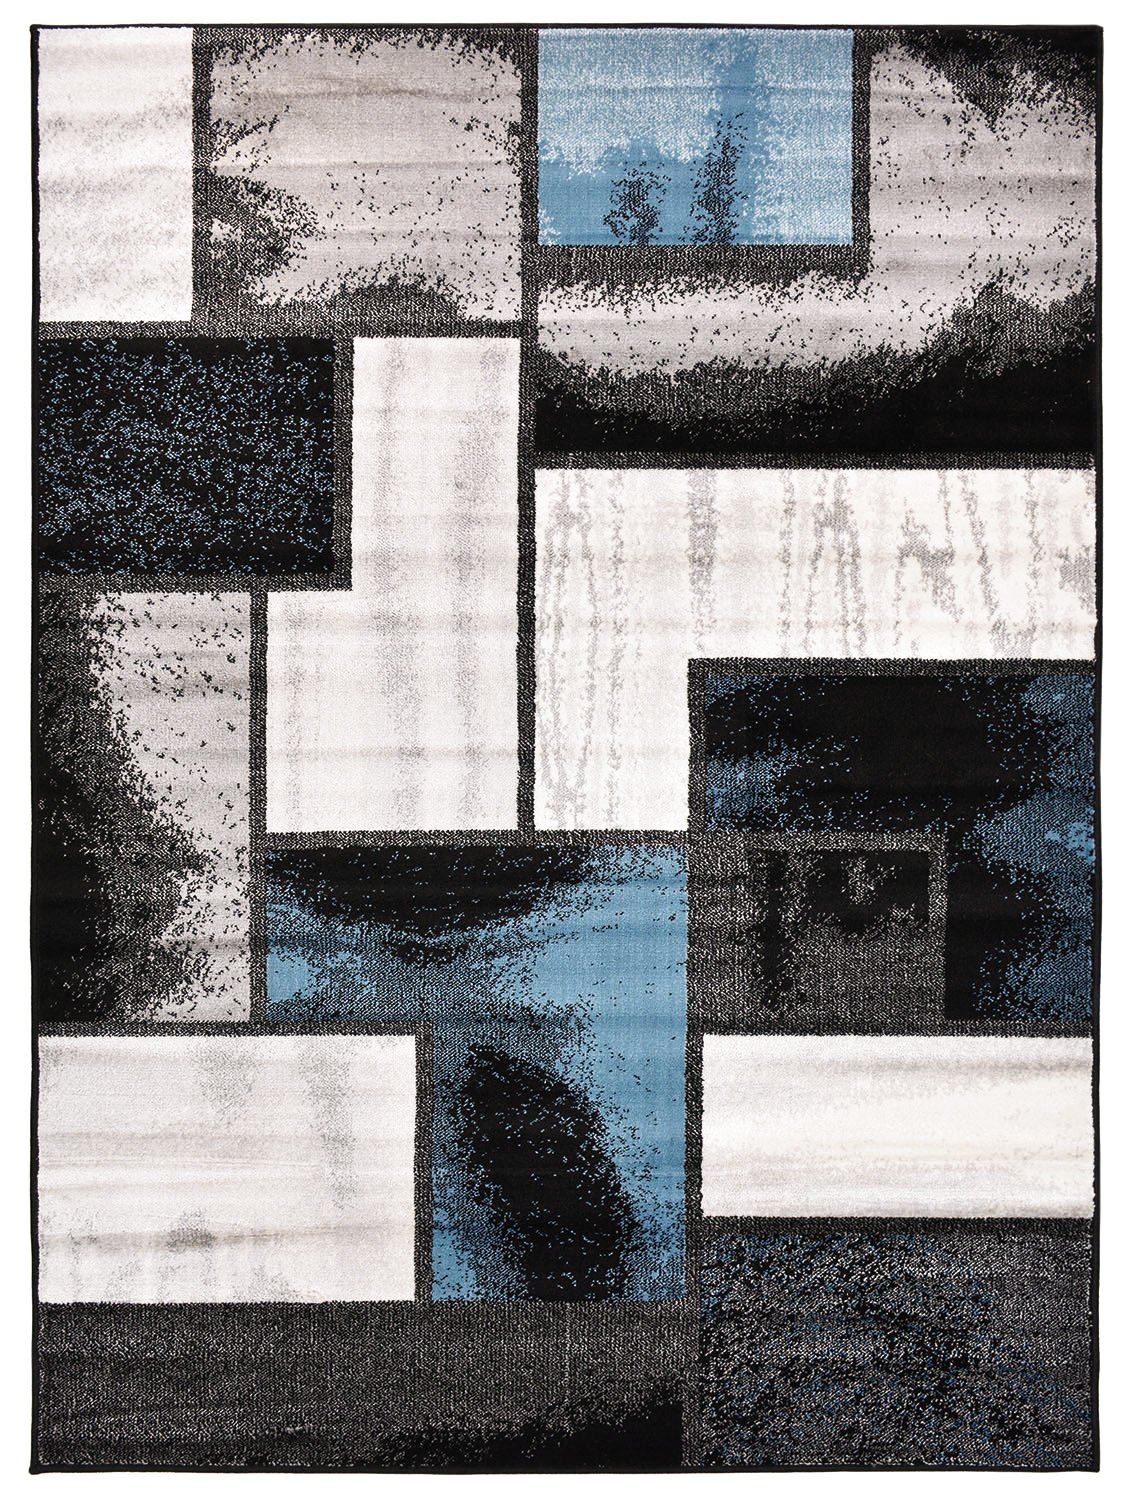 amazoncom comfy collection squares geometric design area rug moderncontemporary rug  color options (blue  grey  x  mat) kitchen dining. amazoncom comfy collection squares geometric design area rug